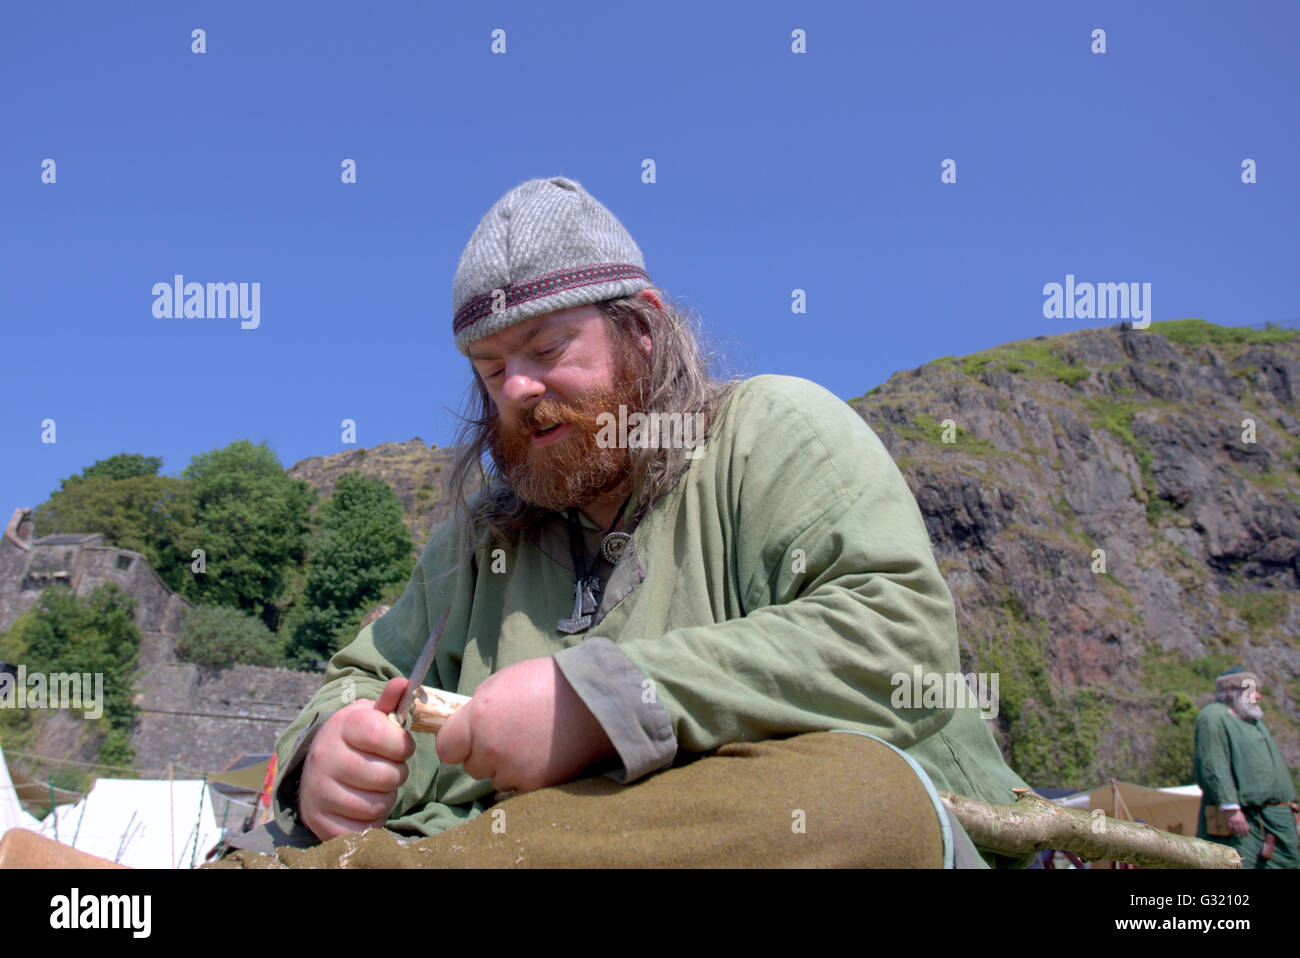 dumbarton castle dumbarton scotland stock photos